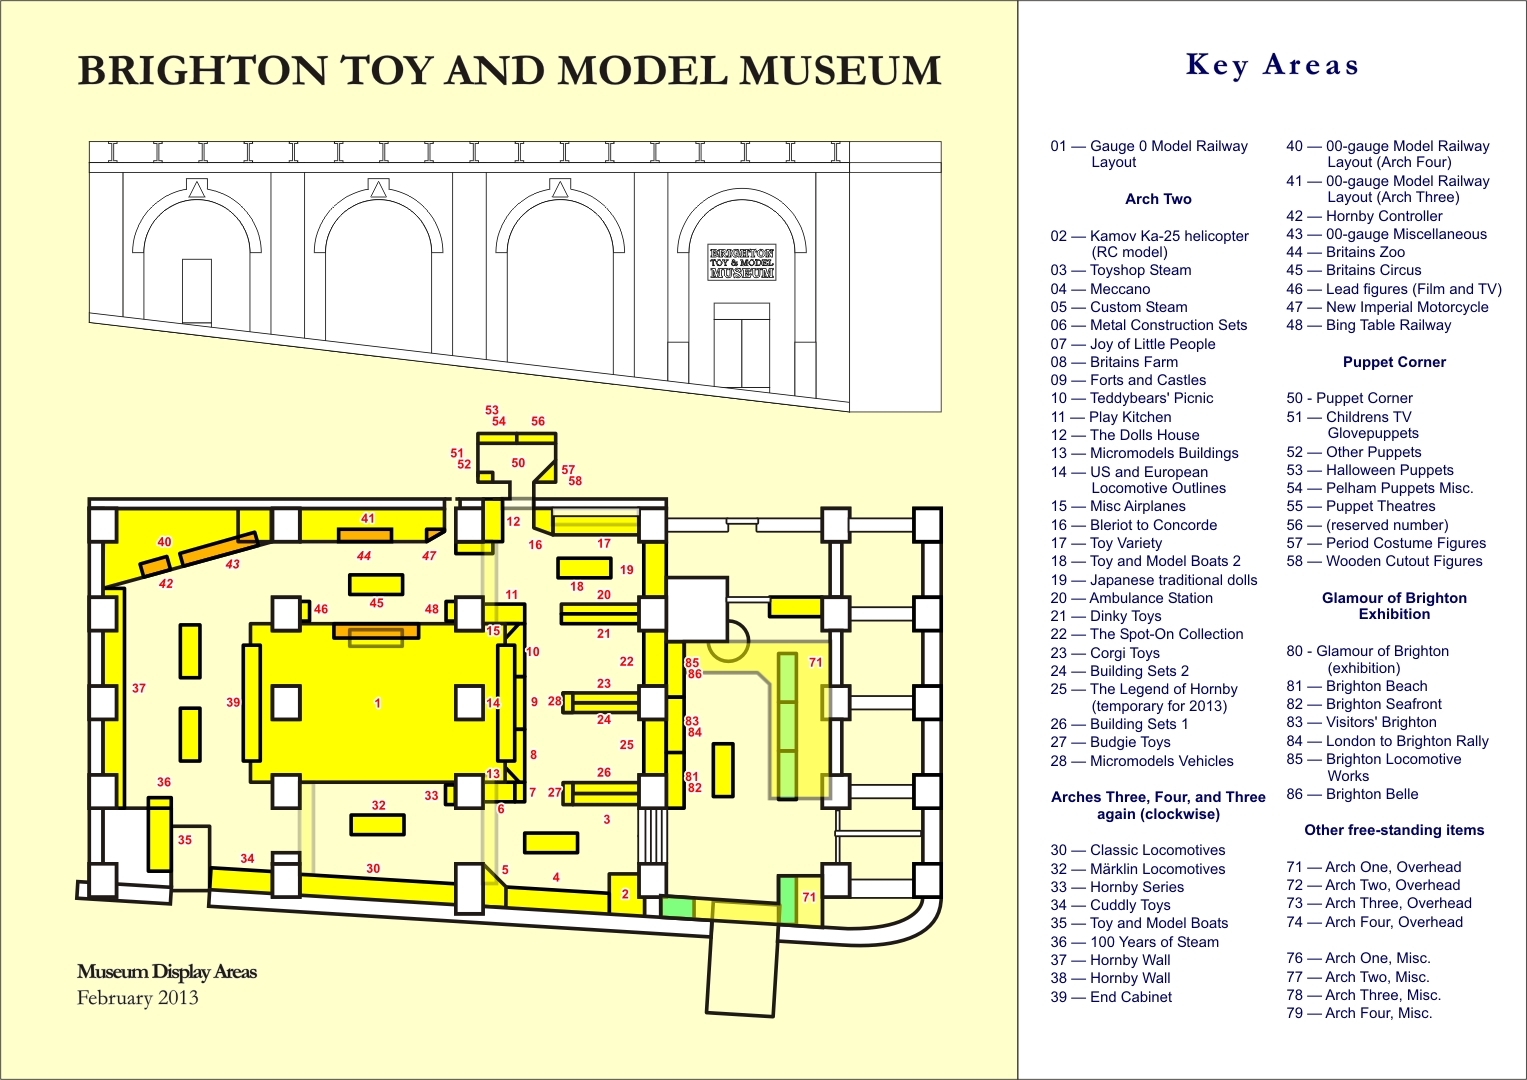 Category Display Areas The Brighton Toy And Model Index